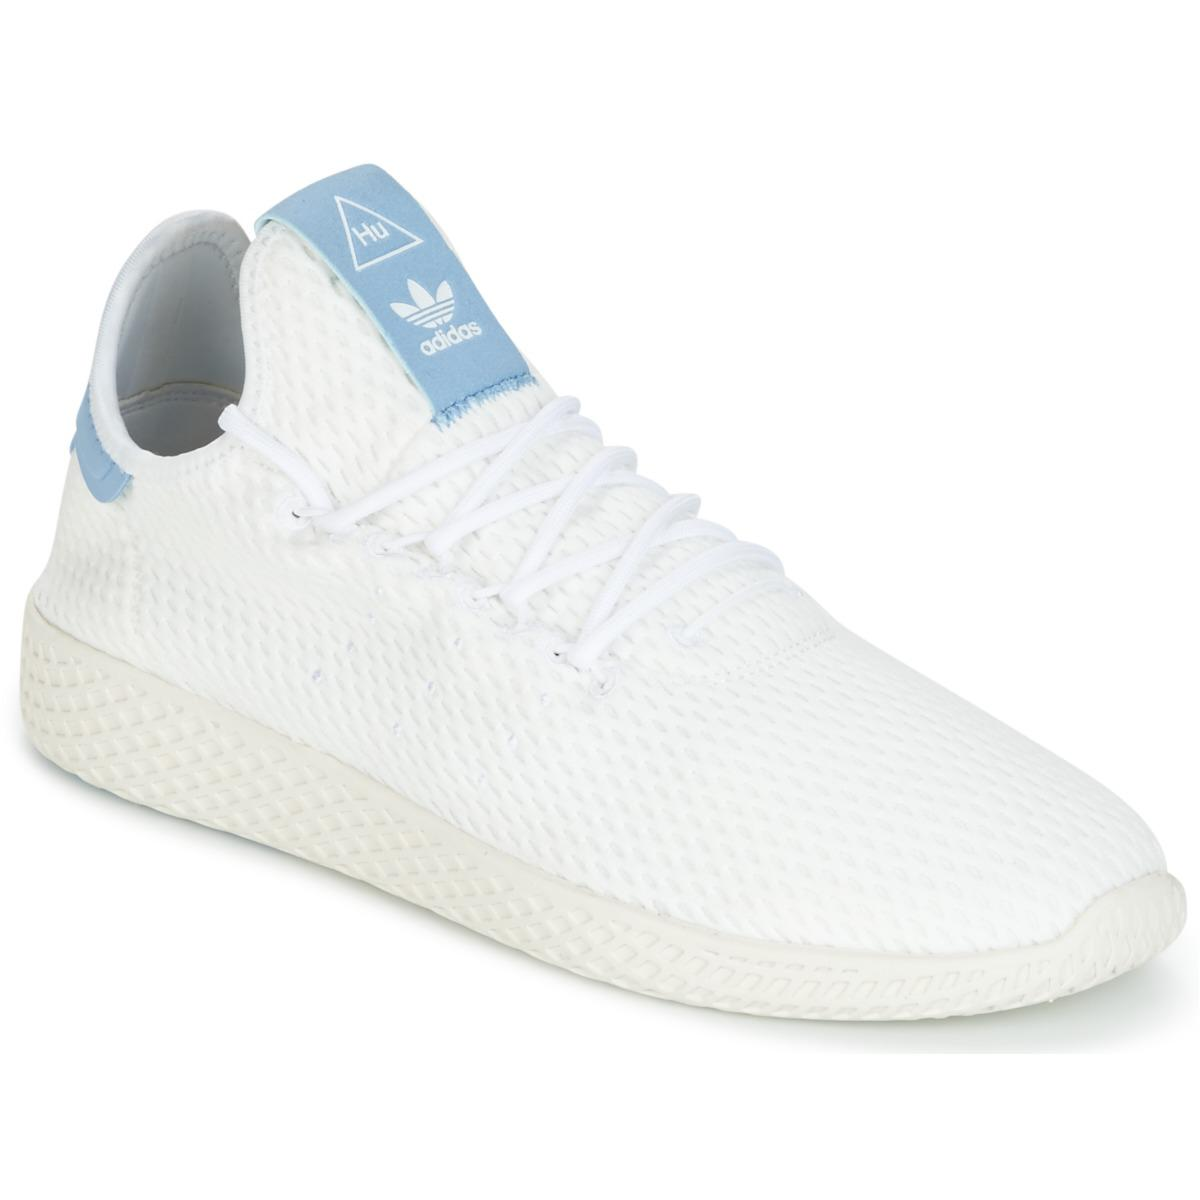 e1e3597c7f9d6 adidas Pharrell Williams Tennis Hu Men s Shoes (trainers) In White ...